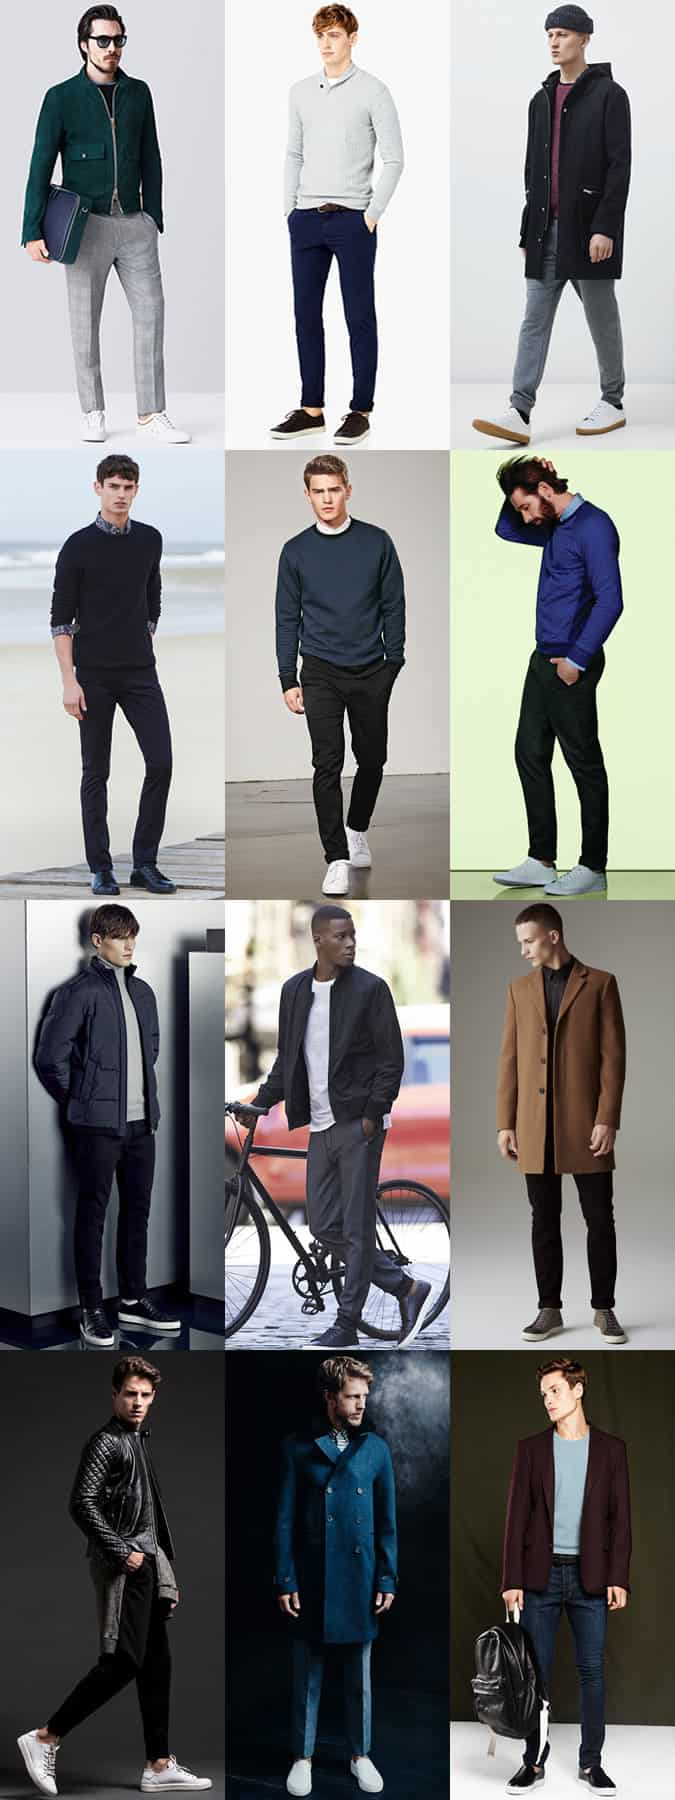 Men's Minimal Leather Low Top Trainers Outfit Inspiration lookbook